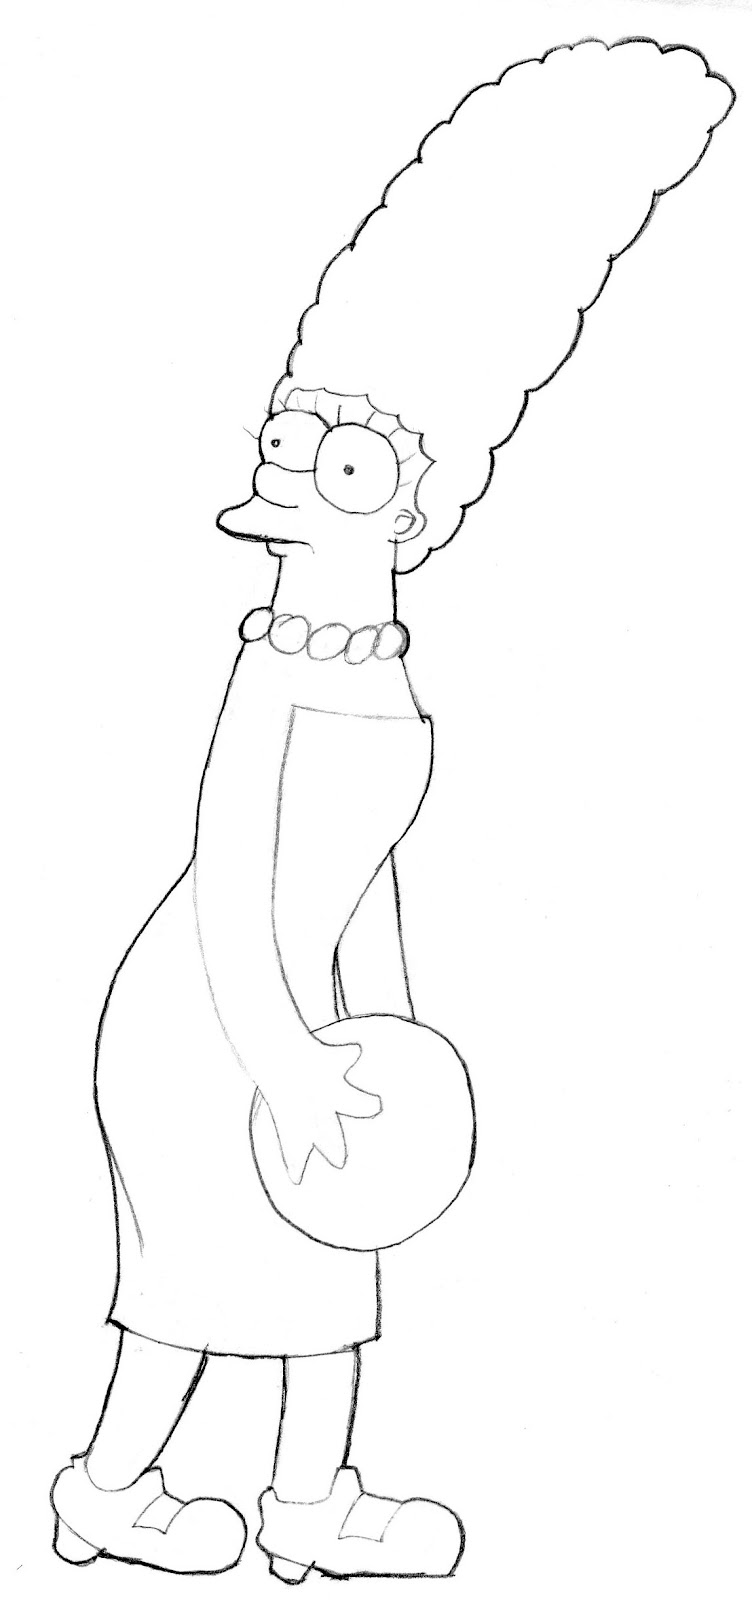 Original Simpsons Drawings Original Simpsons Drawings